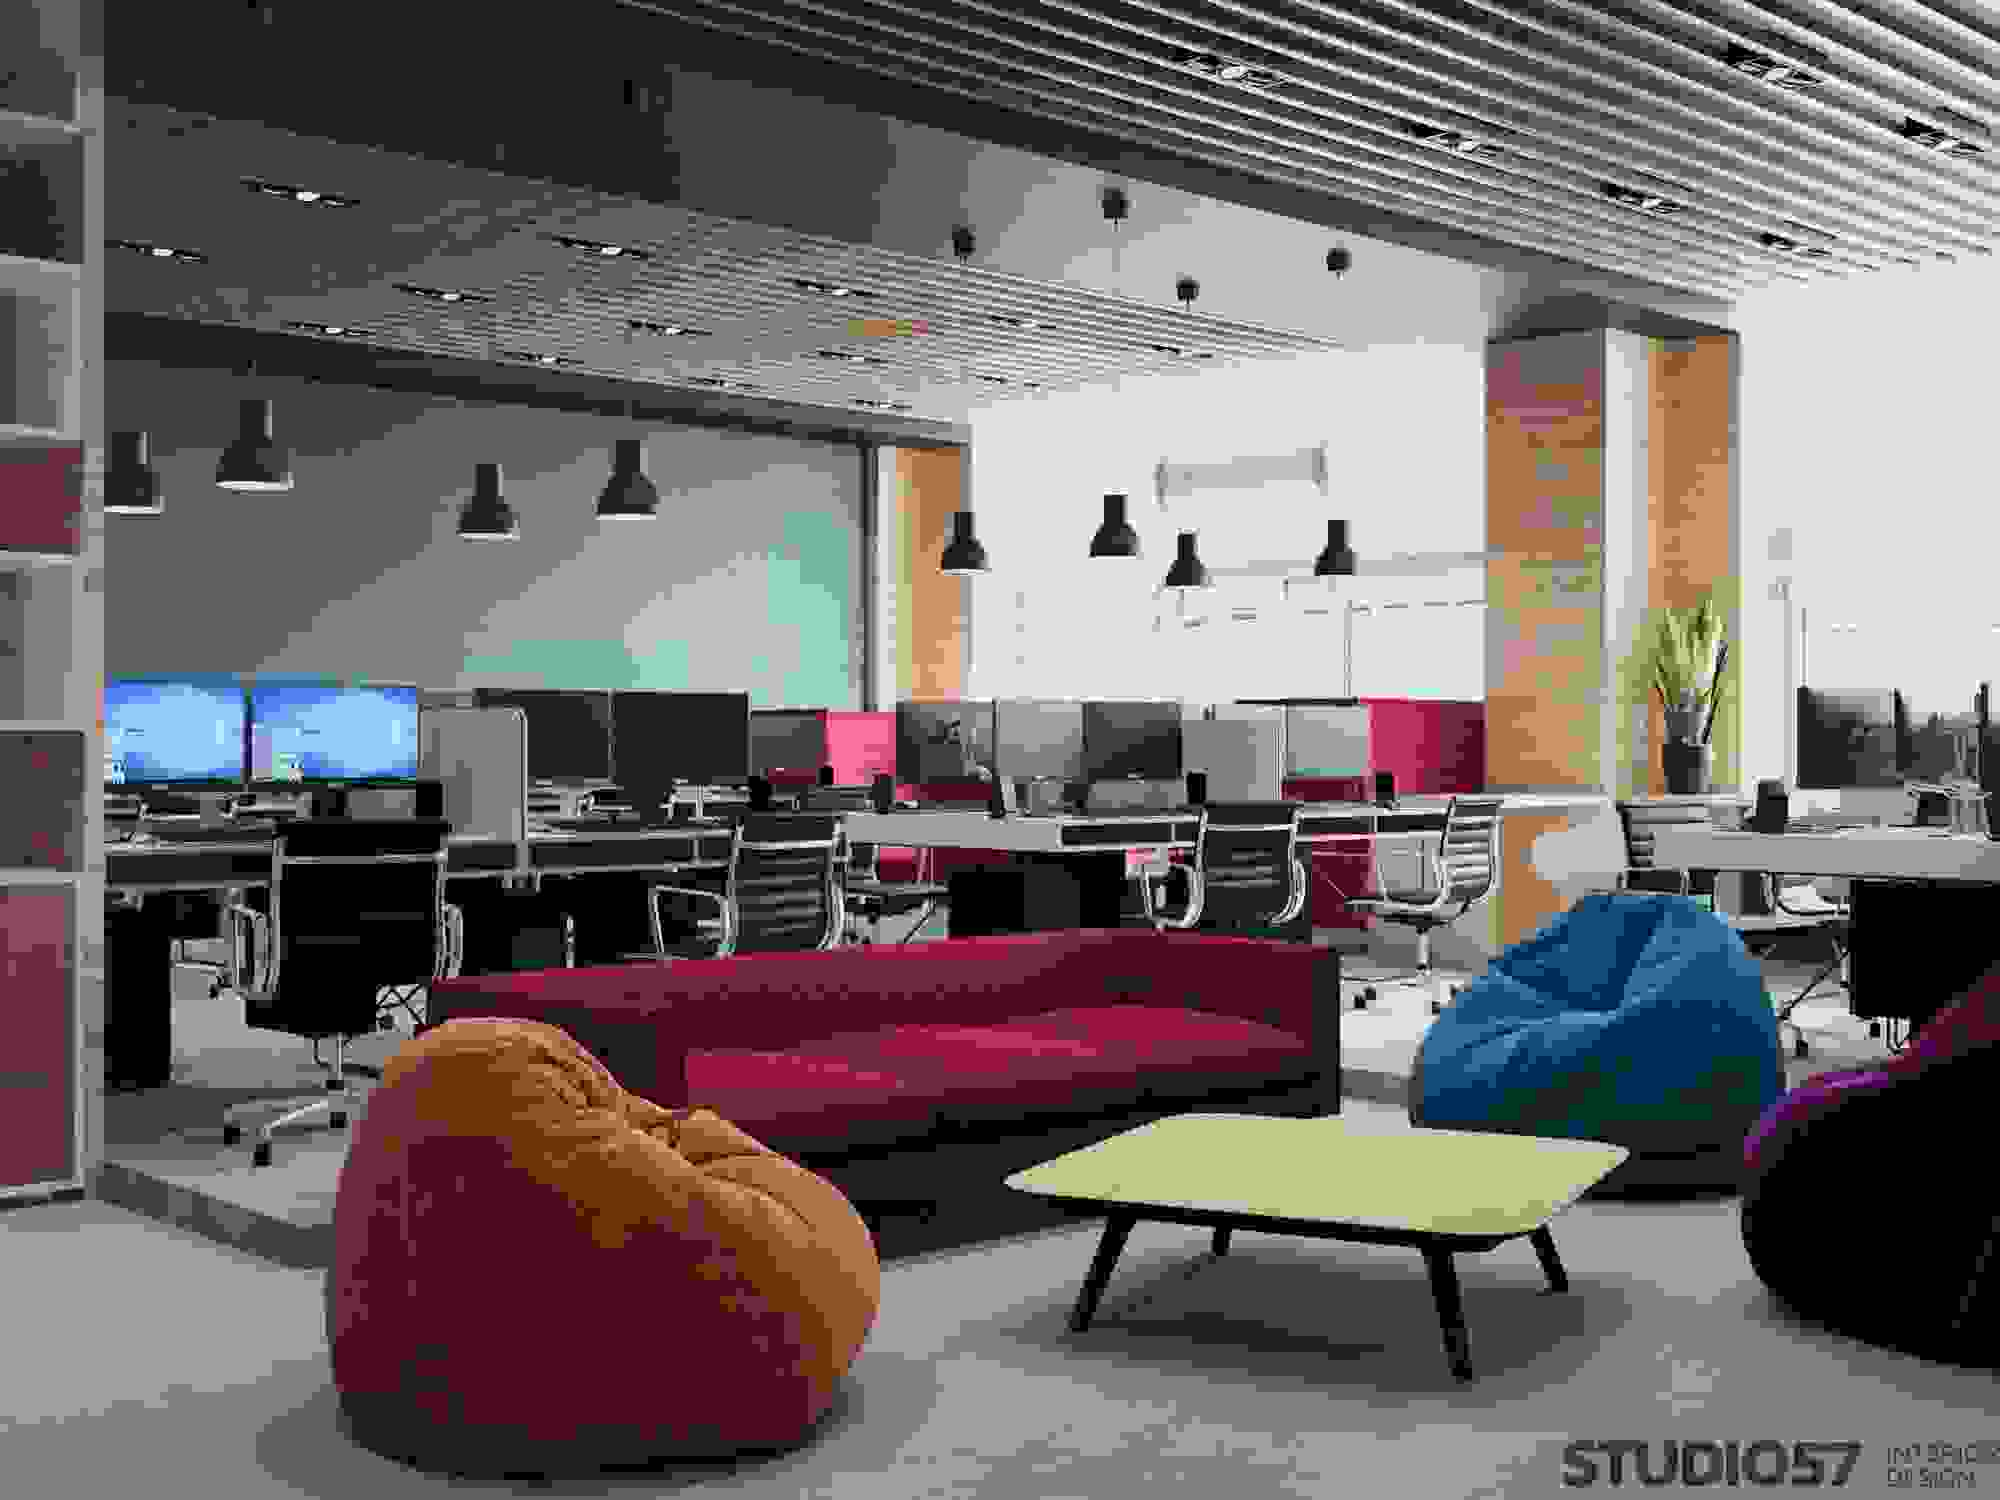 Design of the workplaces in the office photo